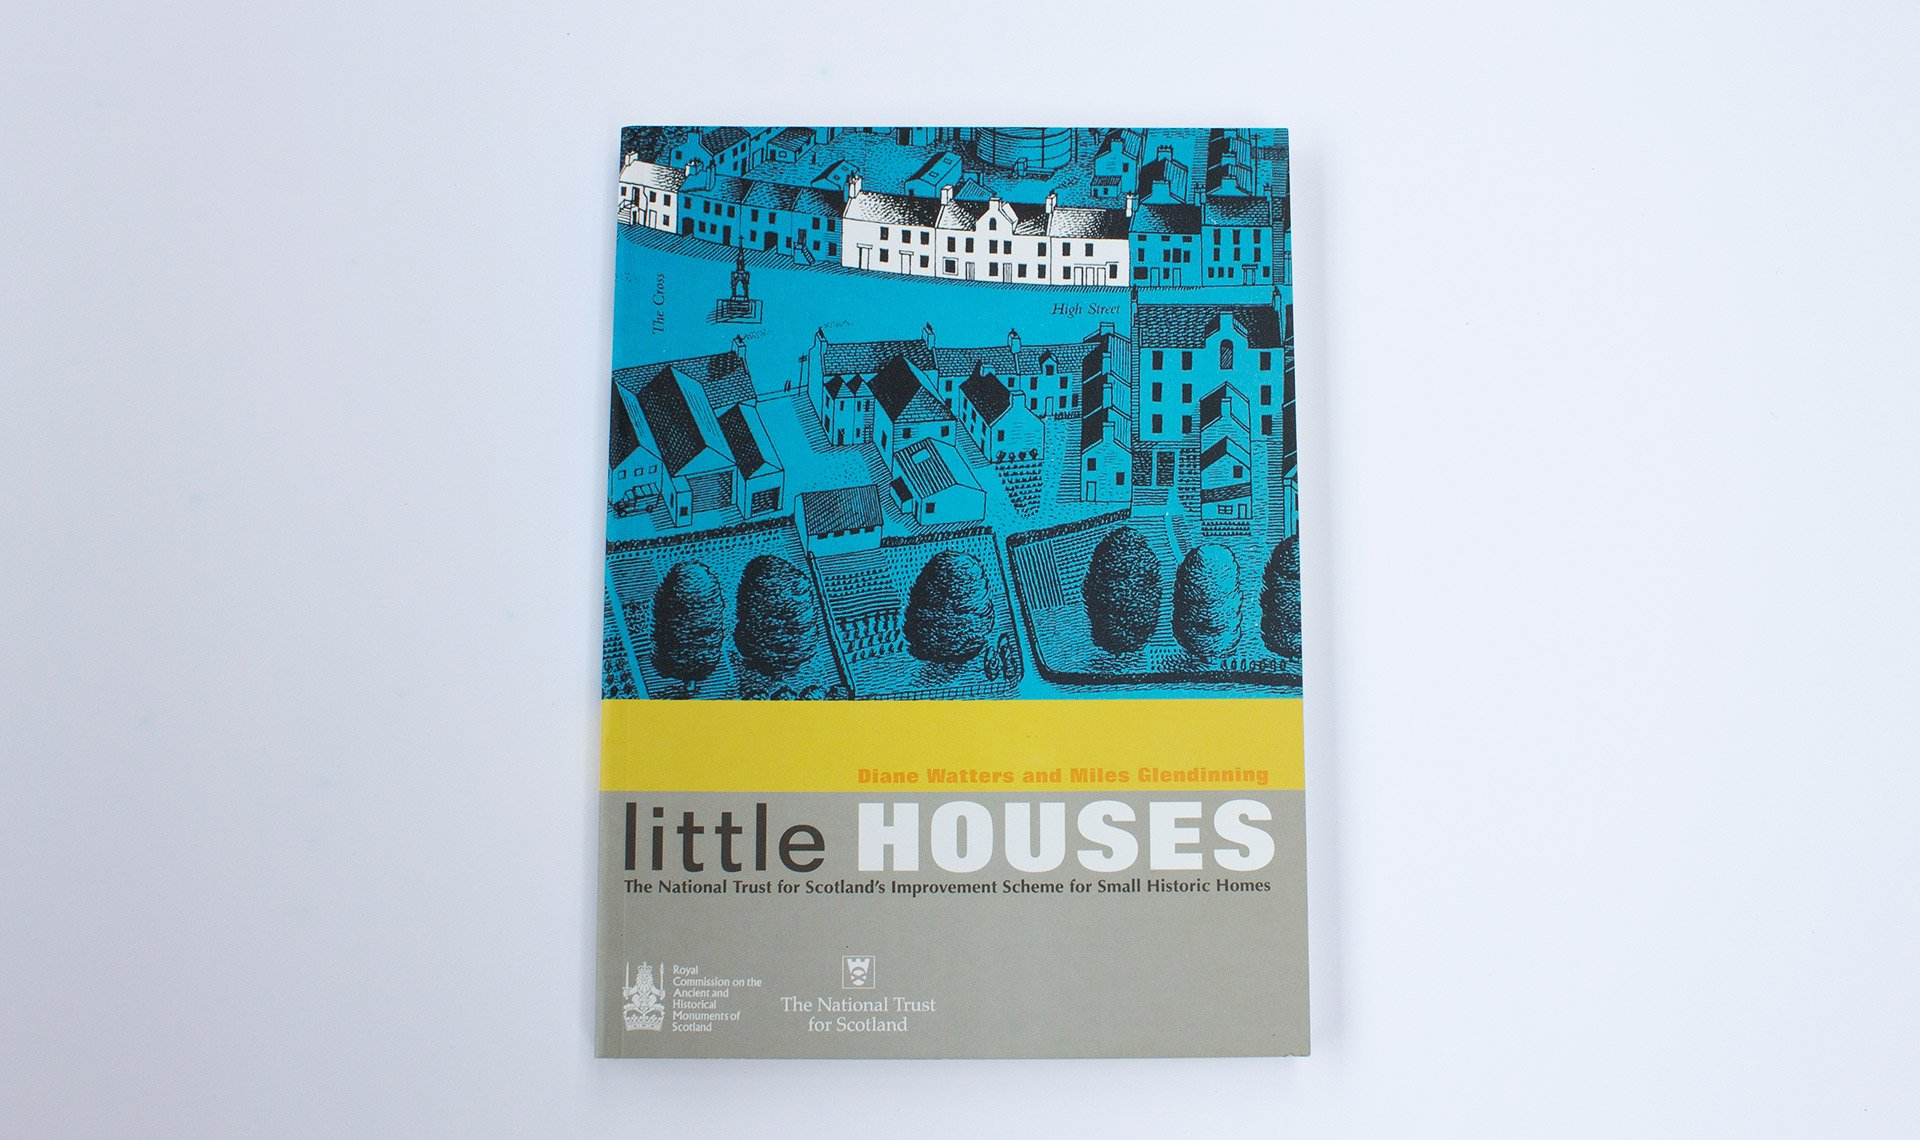 Little houses book cover design